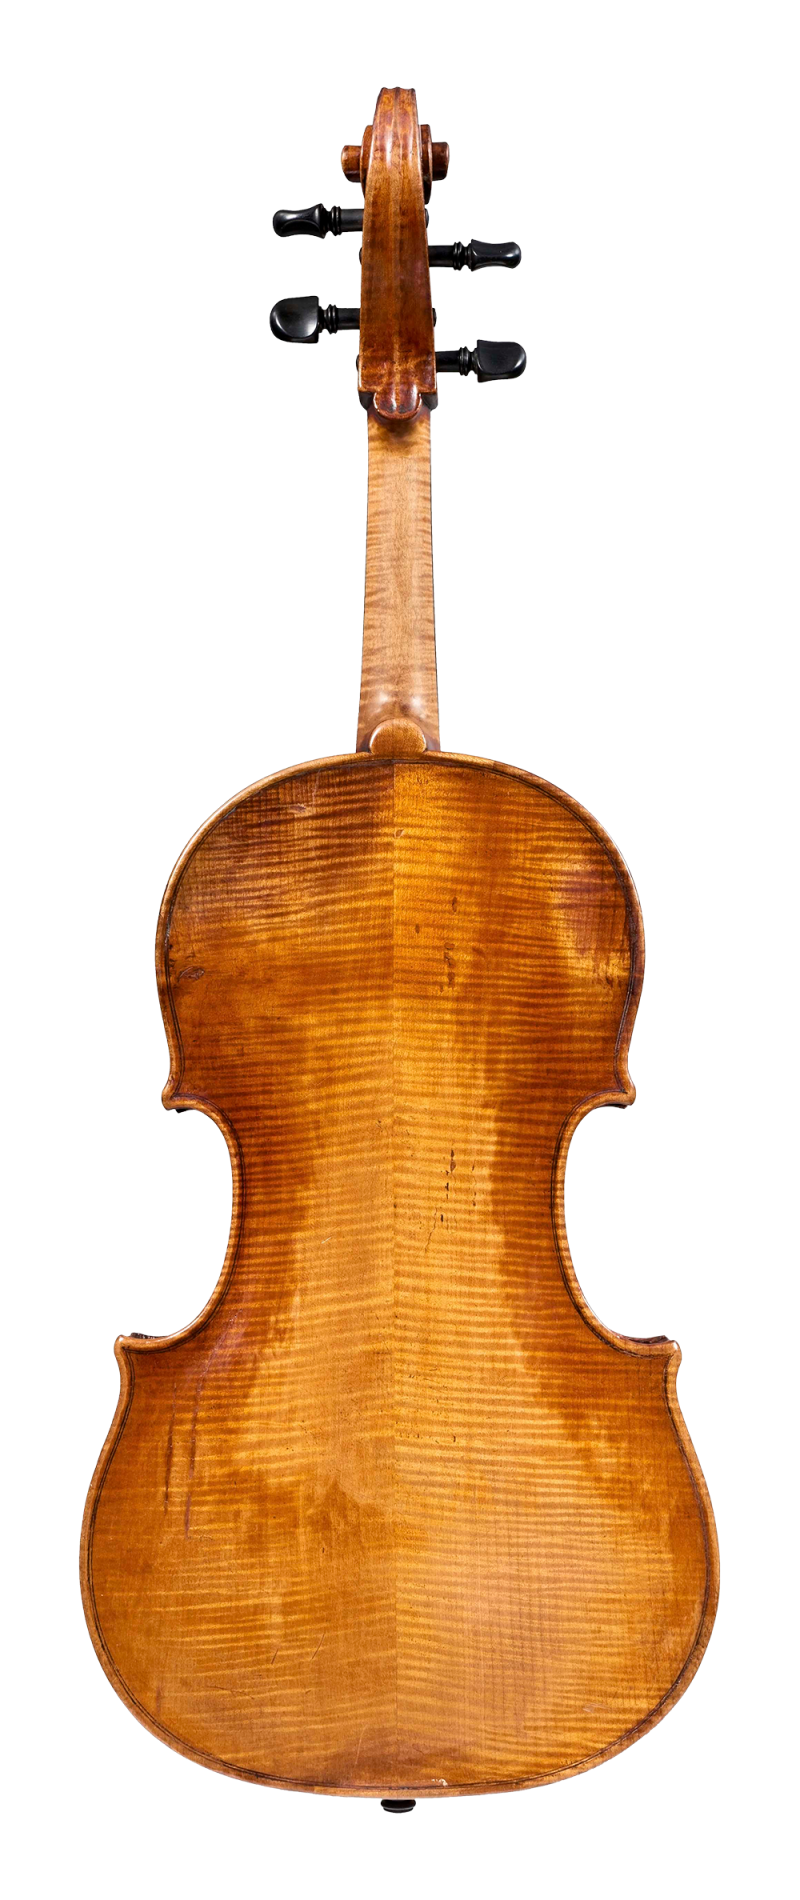 Back of a viola by Gaetano Sgarabotto, circa 1920. This viola has a full and warm sound with a singing A string and an open bass register.